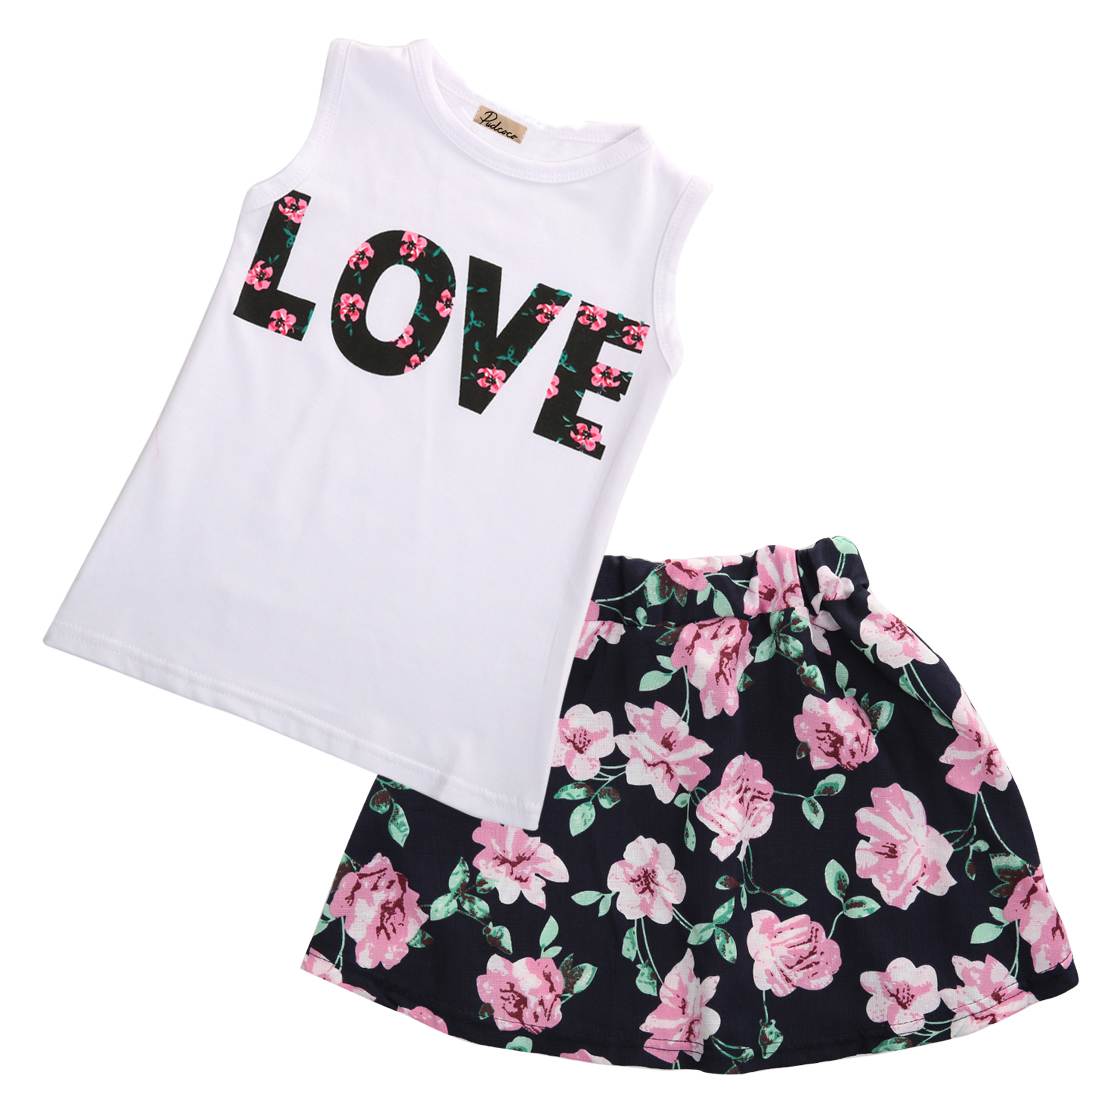 Emmababy Flower Girs Clothing Age 2-7Y baby girls clothes set 2pcs/set love sleeveless T-shirts+print mini skirts Outfits Set